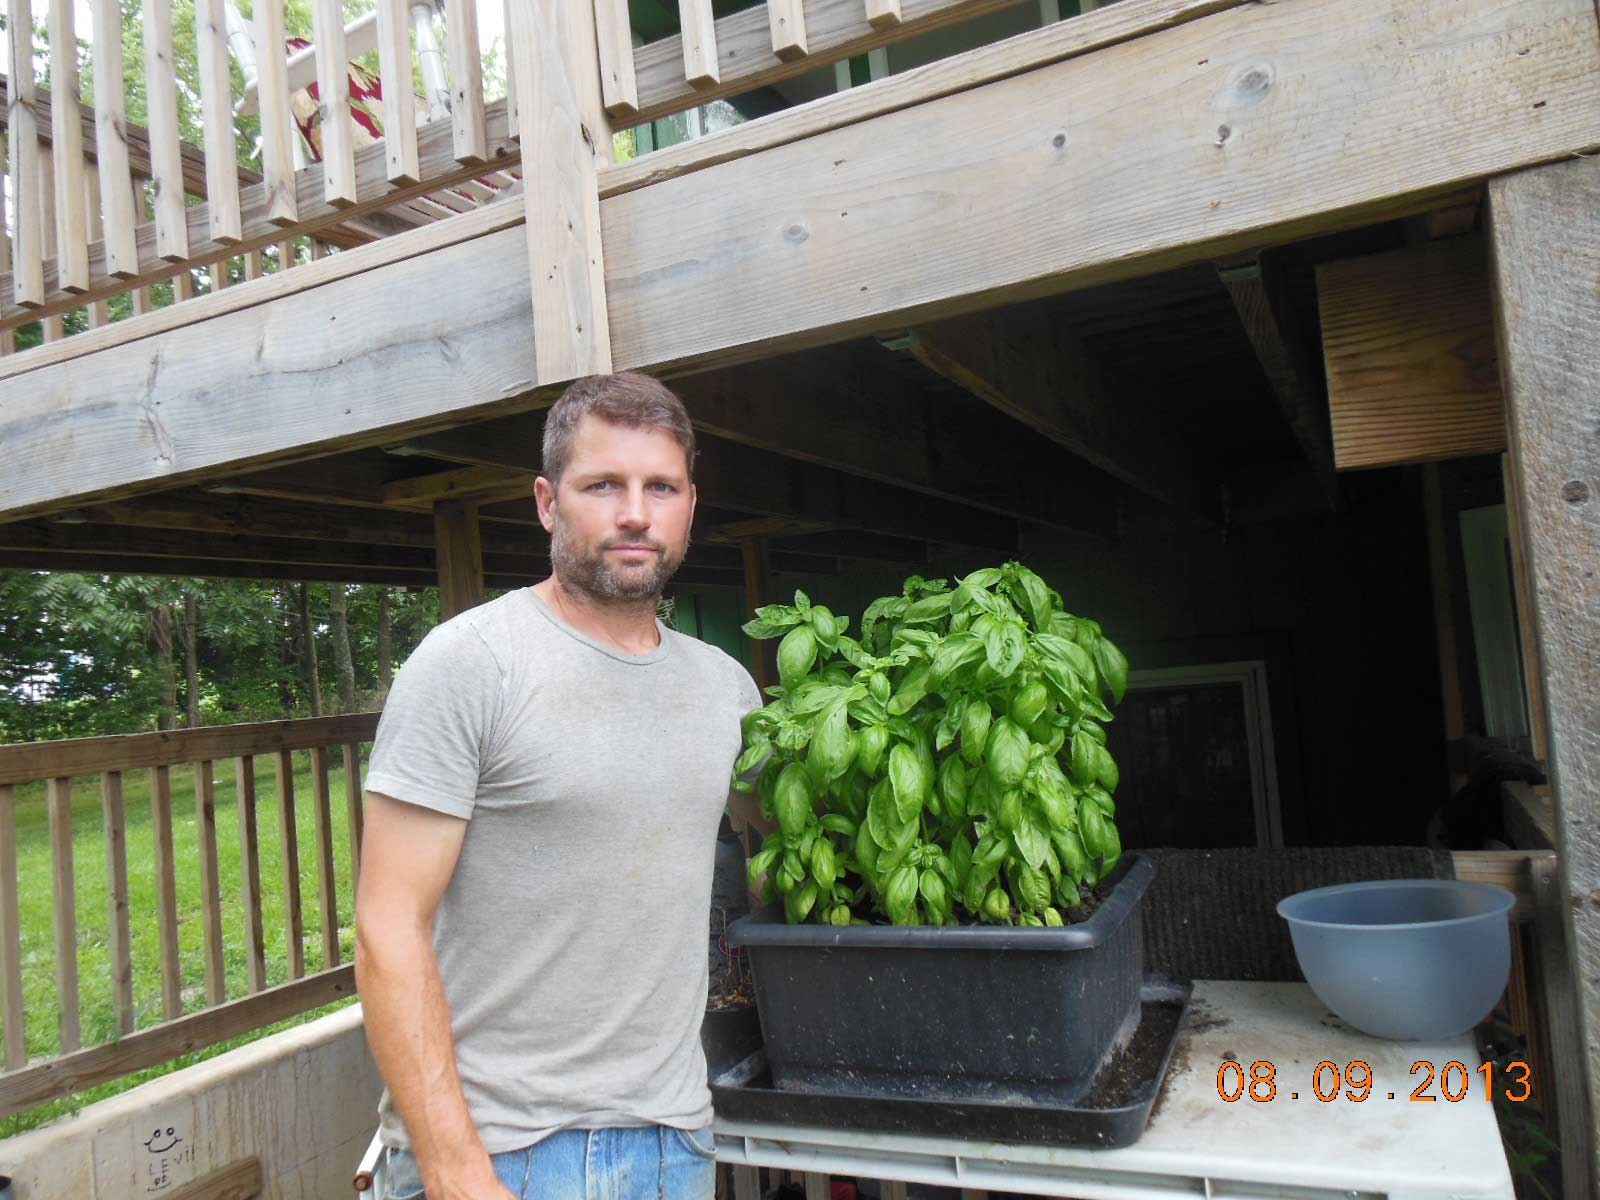 Basil growing in the urbin grower